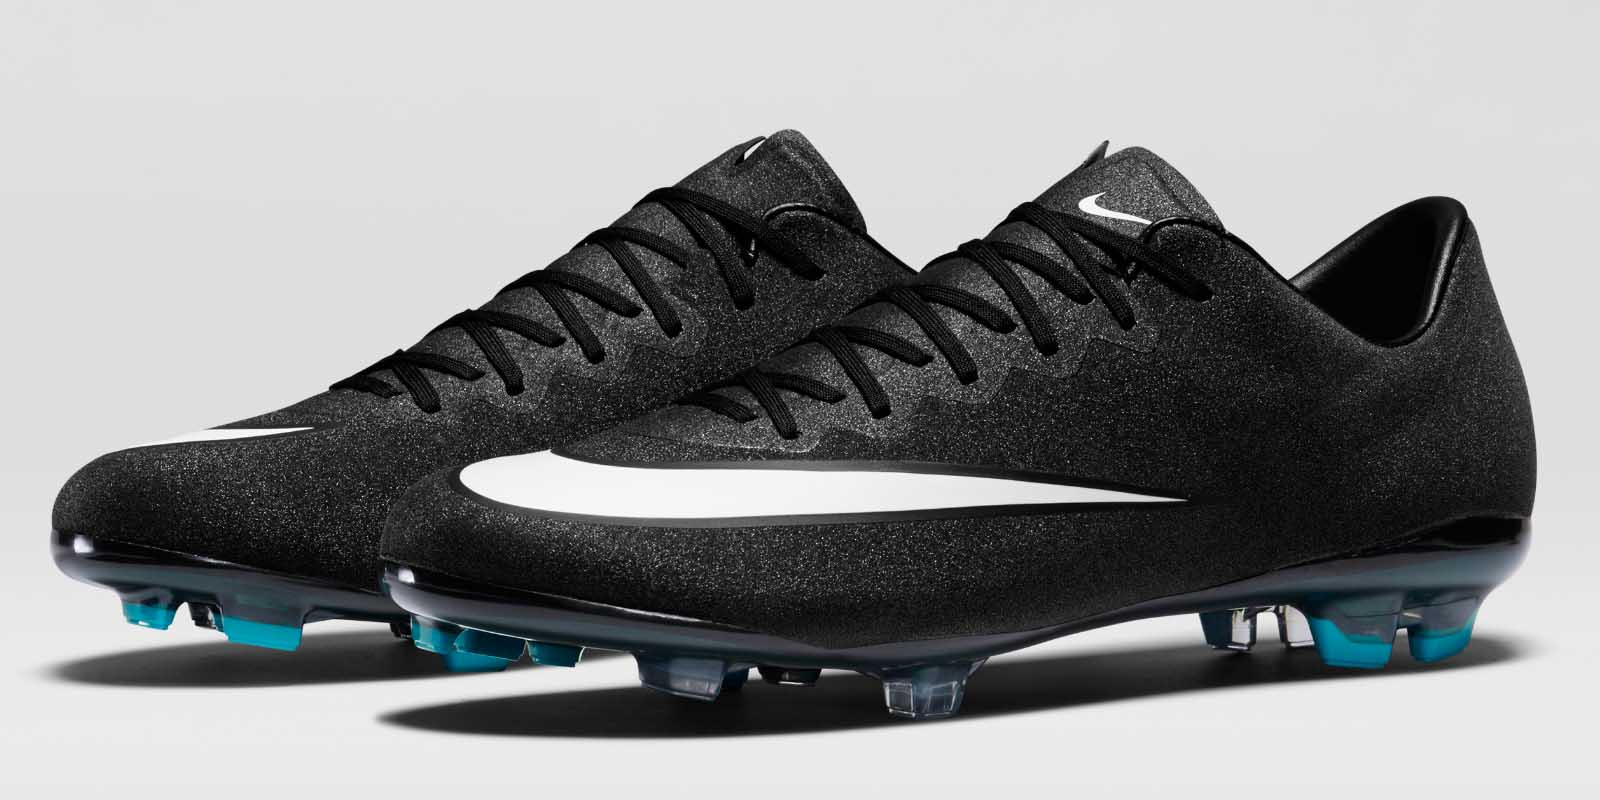 nike mercurial vapor x cr7 1415 gala boot released